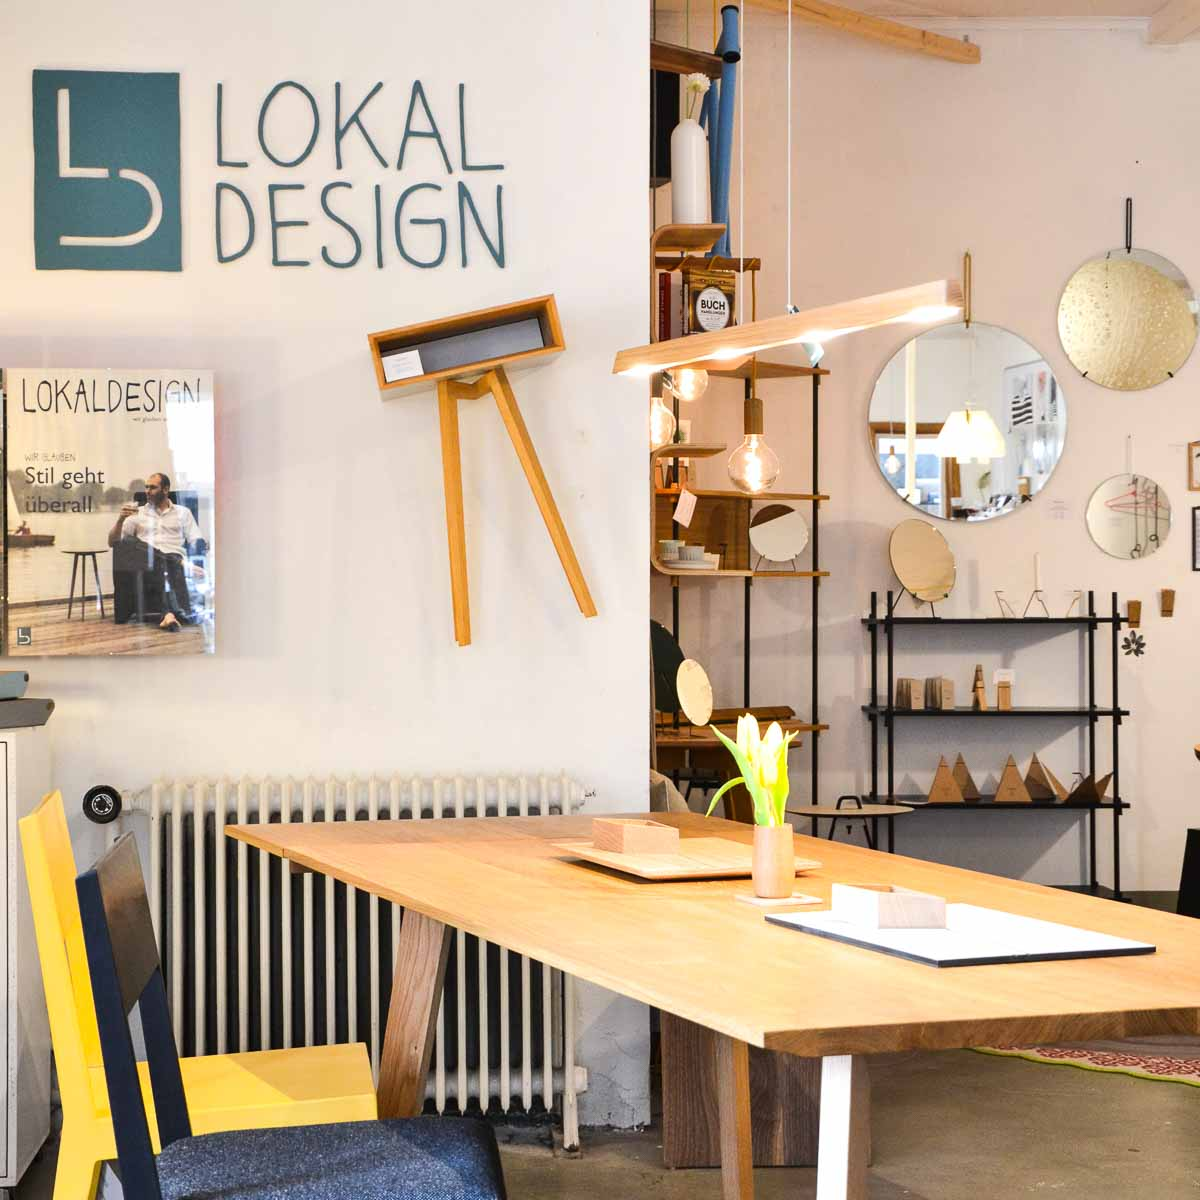 Concept Store Lokaldesign in Hamburg